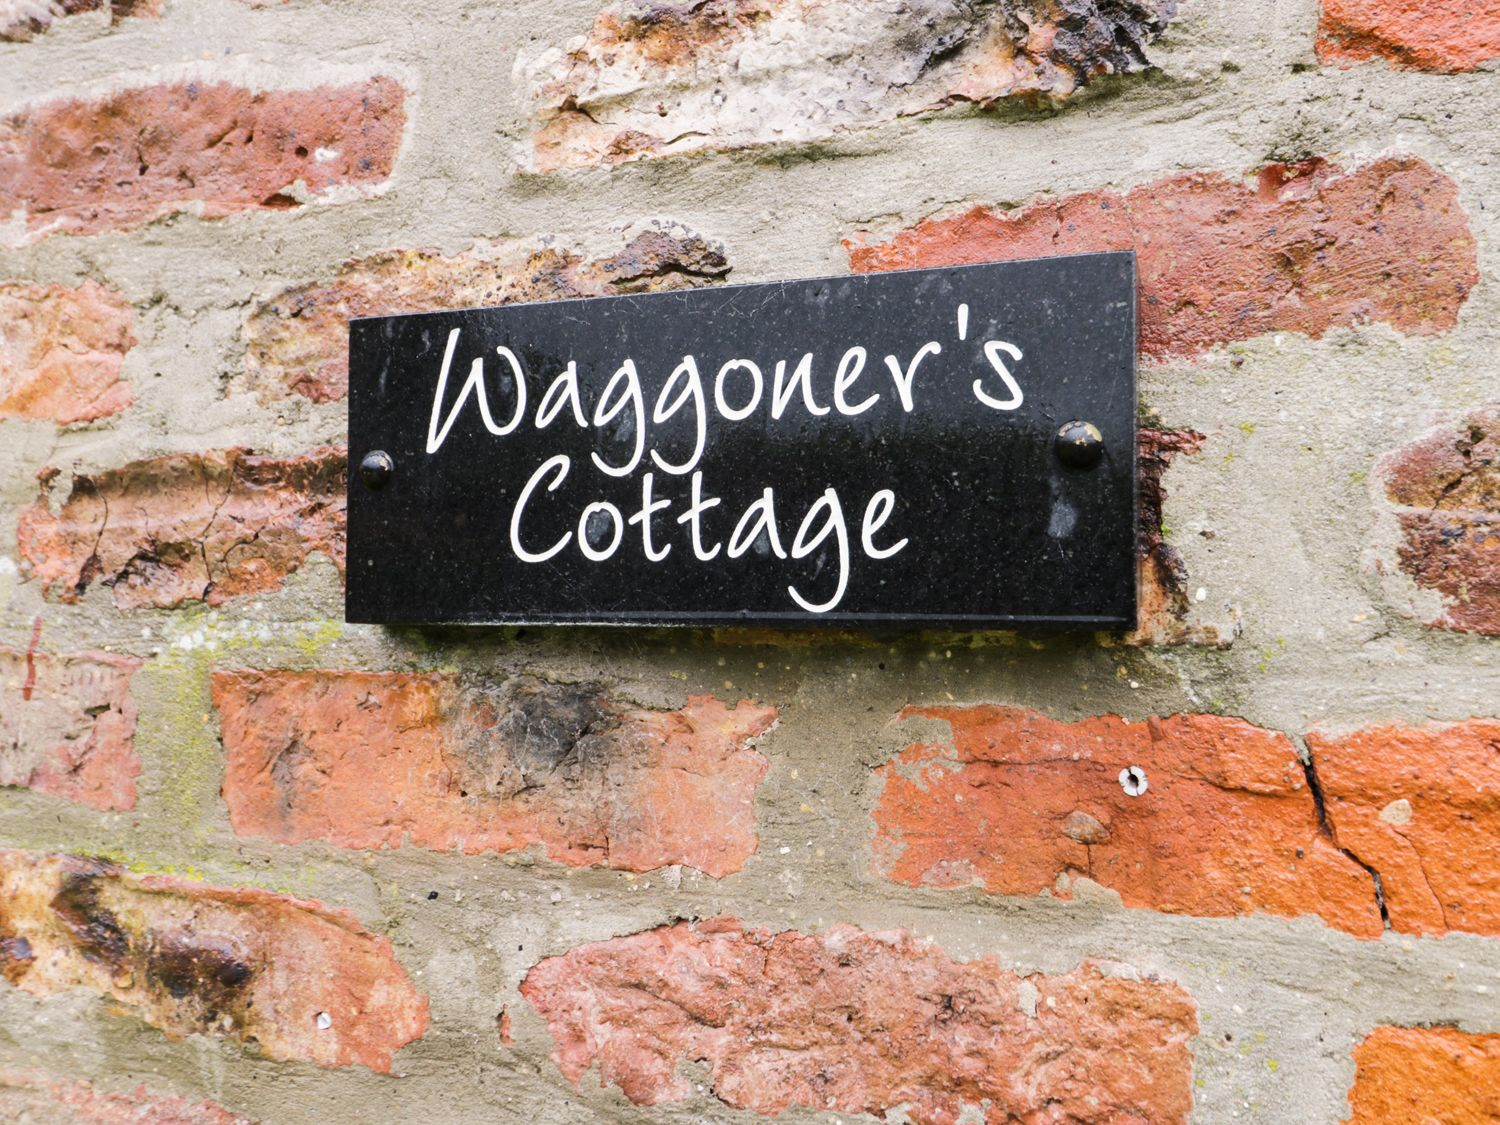 Waggoner's Cottage, North York Moors and Coast